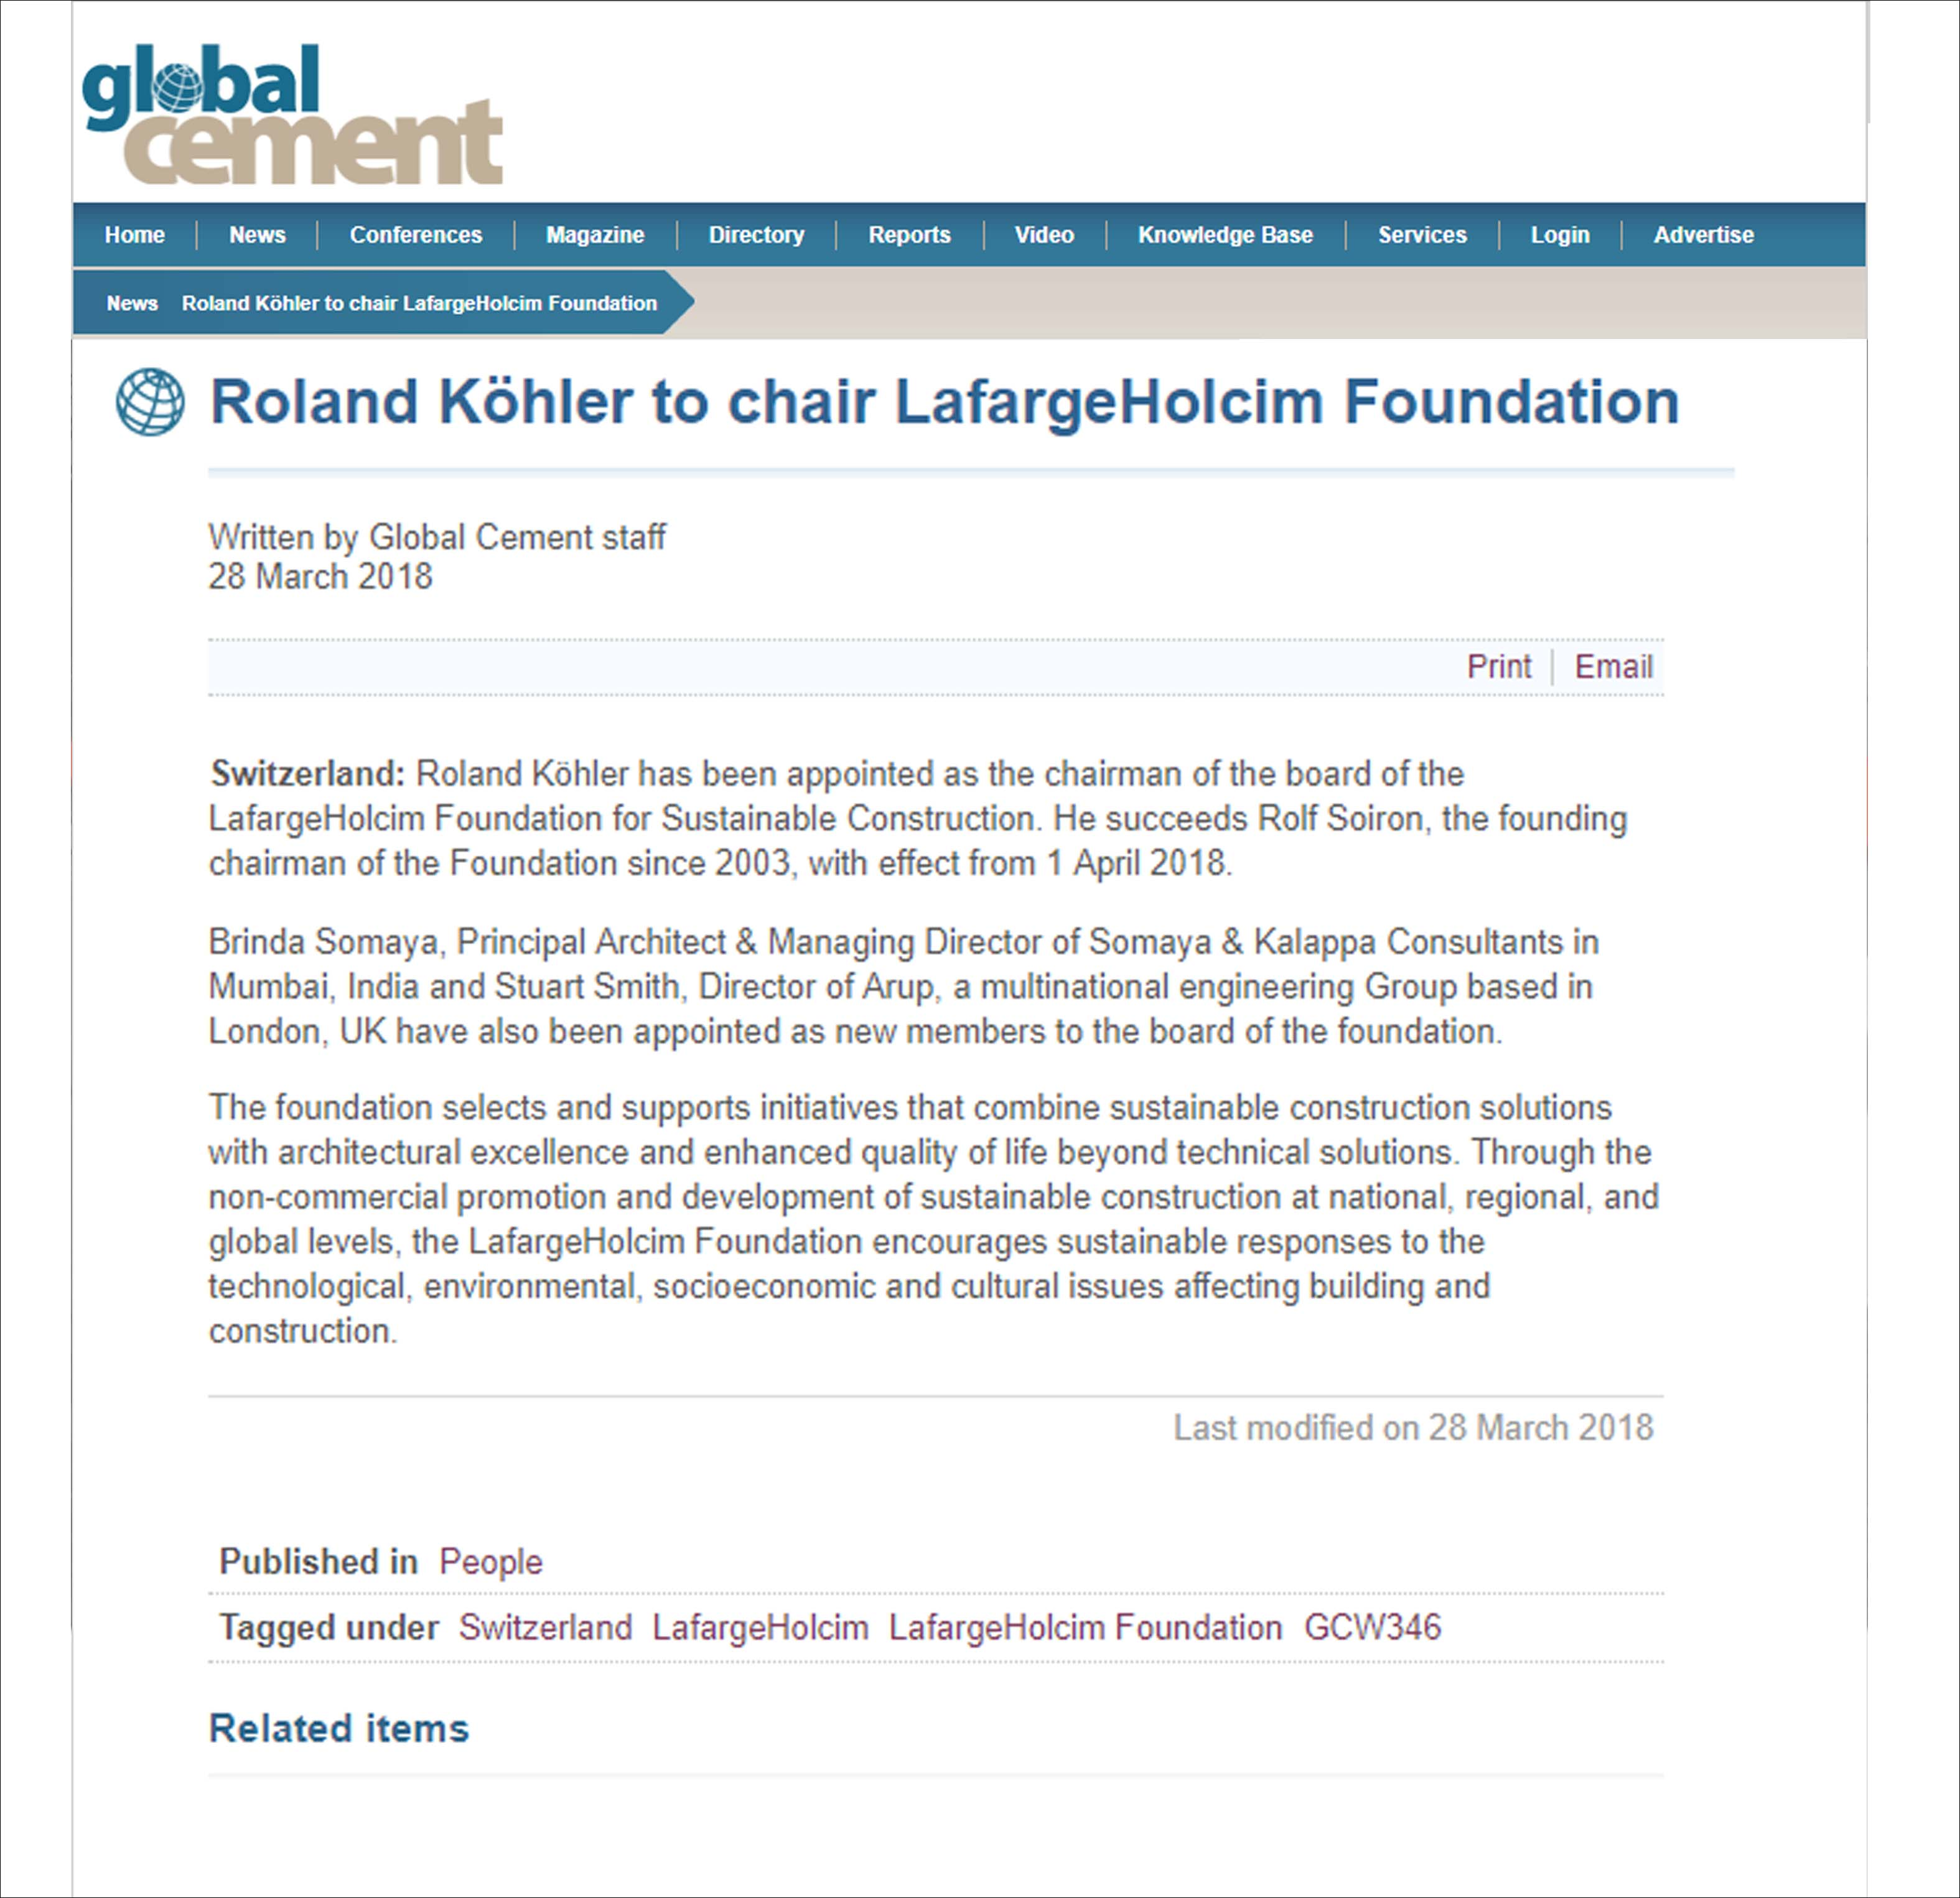 Roland Kohler to chair Lafarge Holcim Foundation, Global Cement - On 28 March 2018